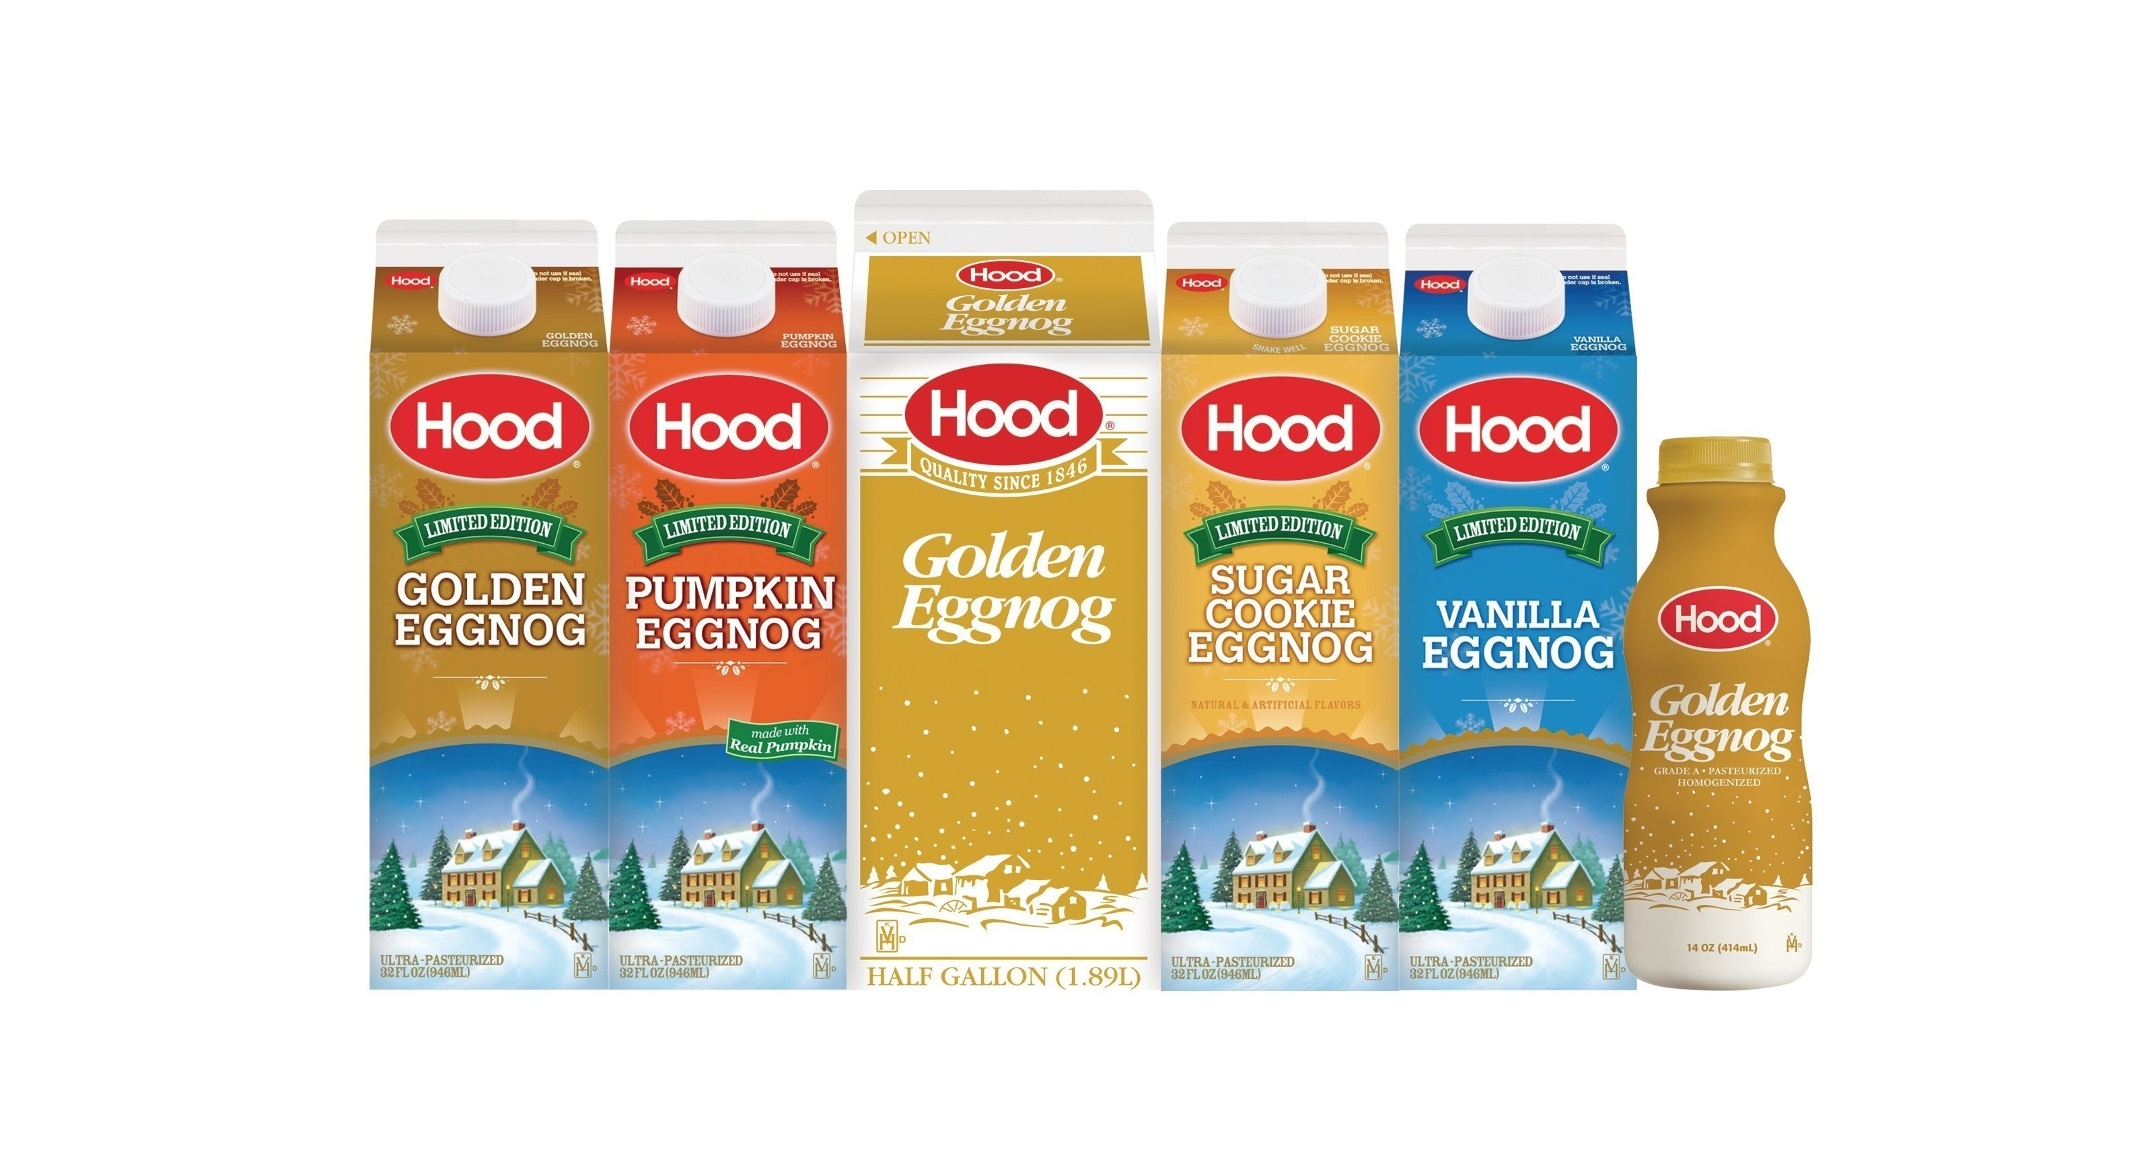 Hood Announces The Return Of Eggnog With New Flavor Lineup